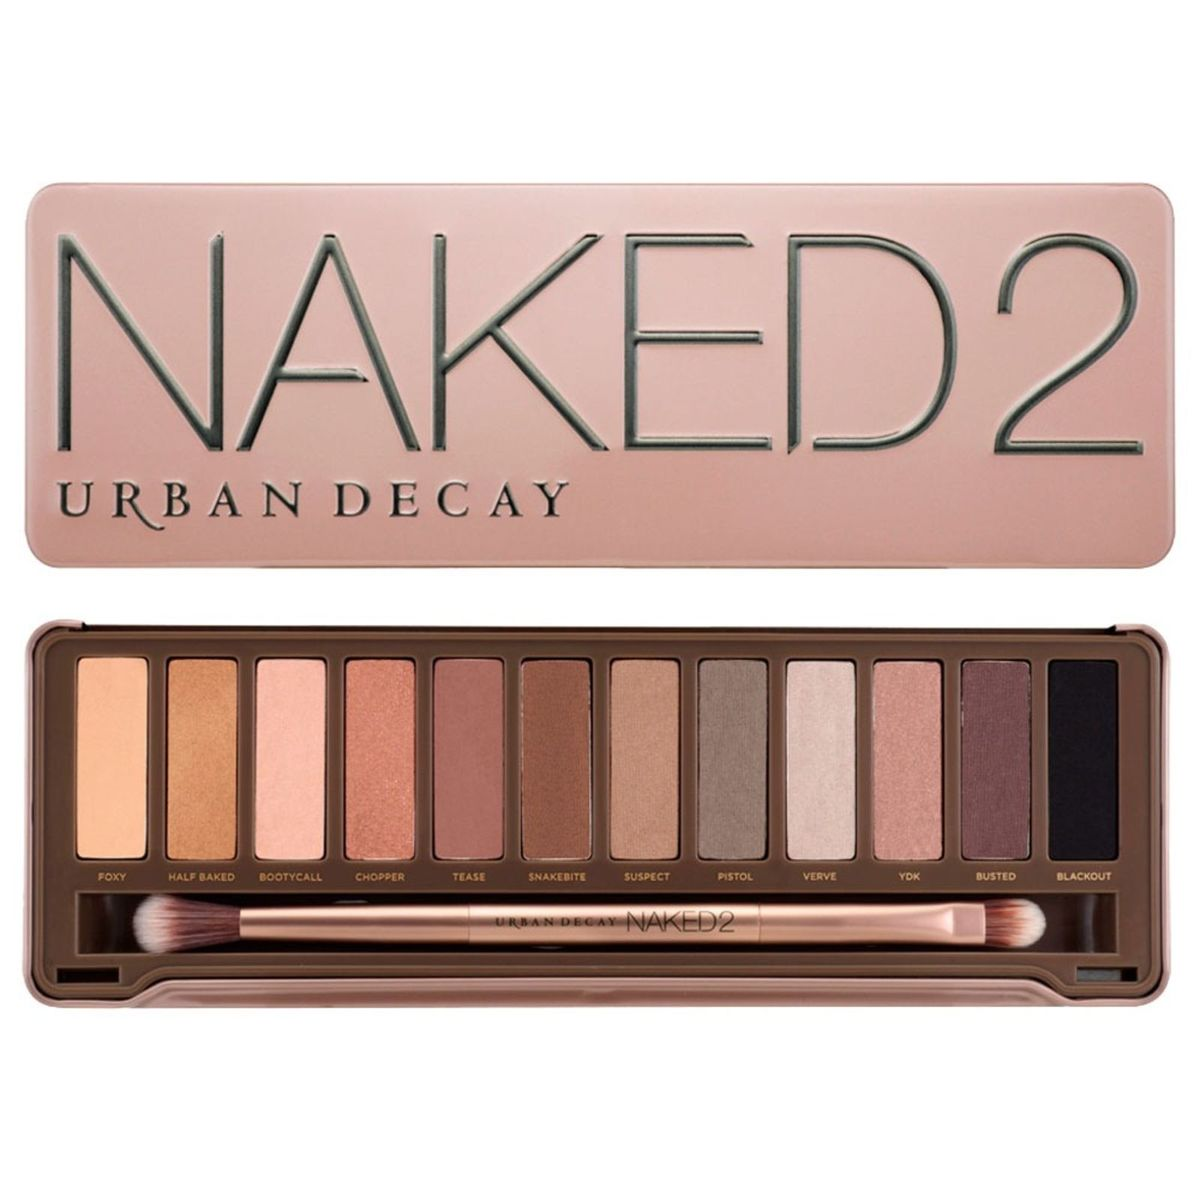 Urban Decay Naked Smoky Palette | Glambot.com - Best deals